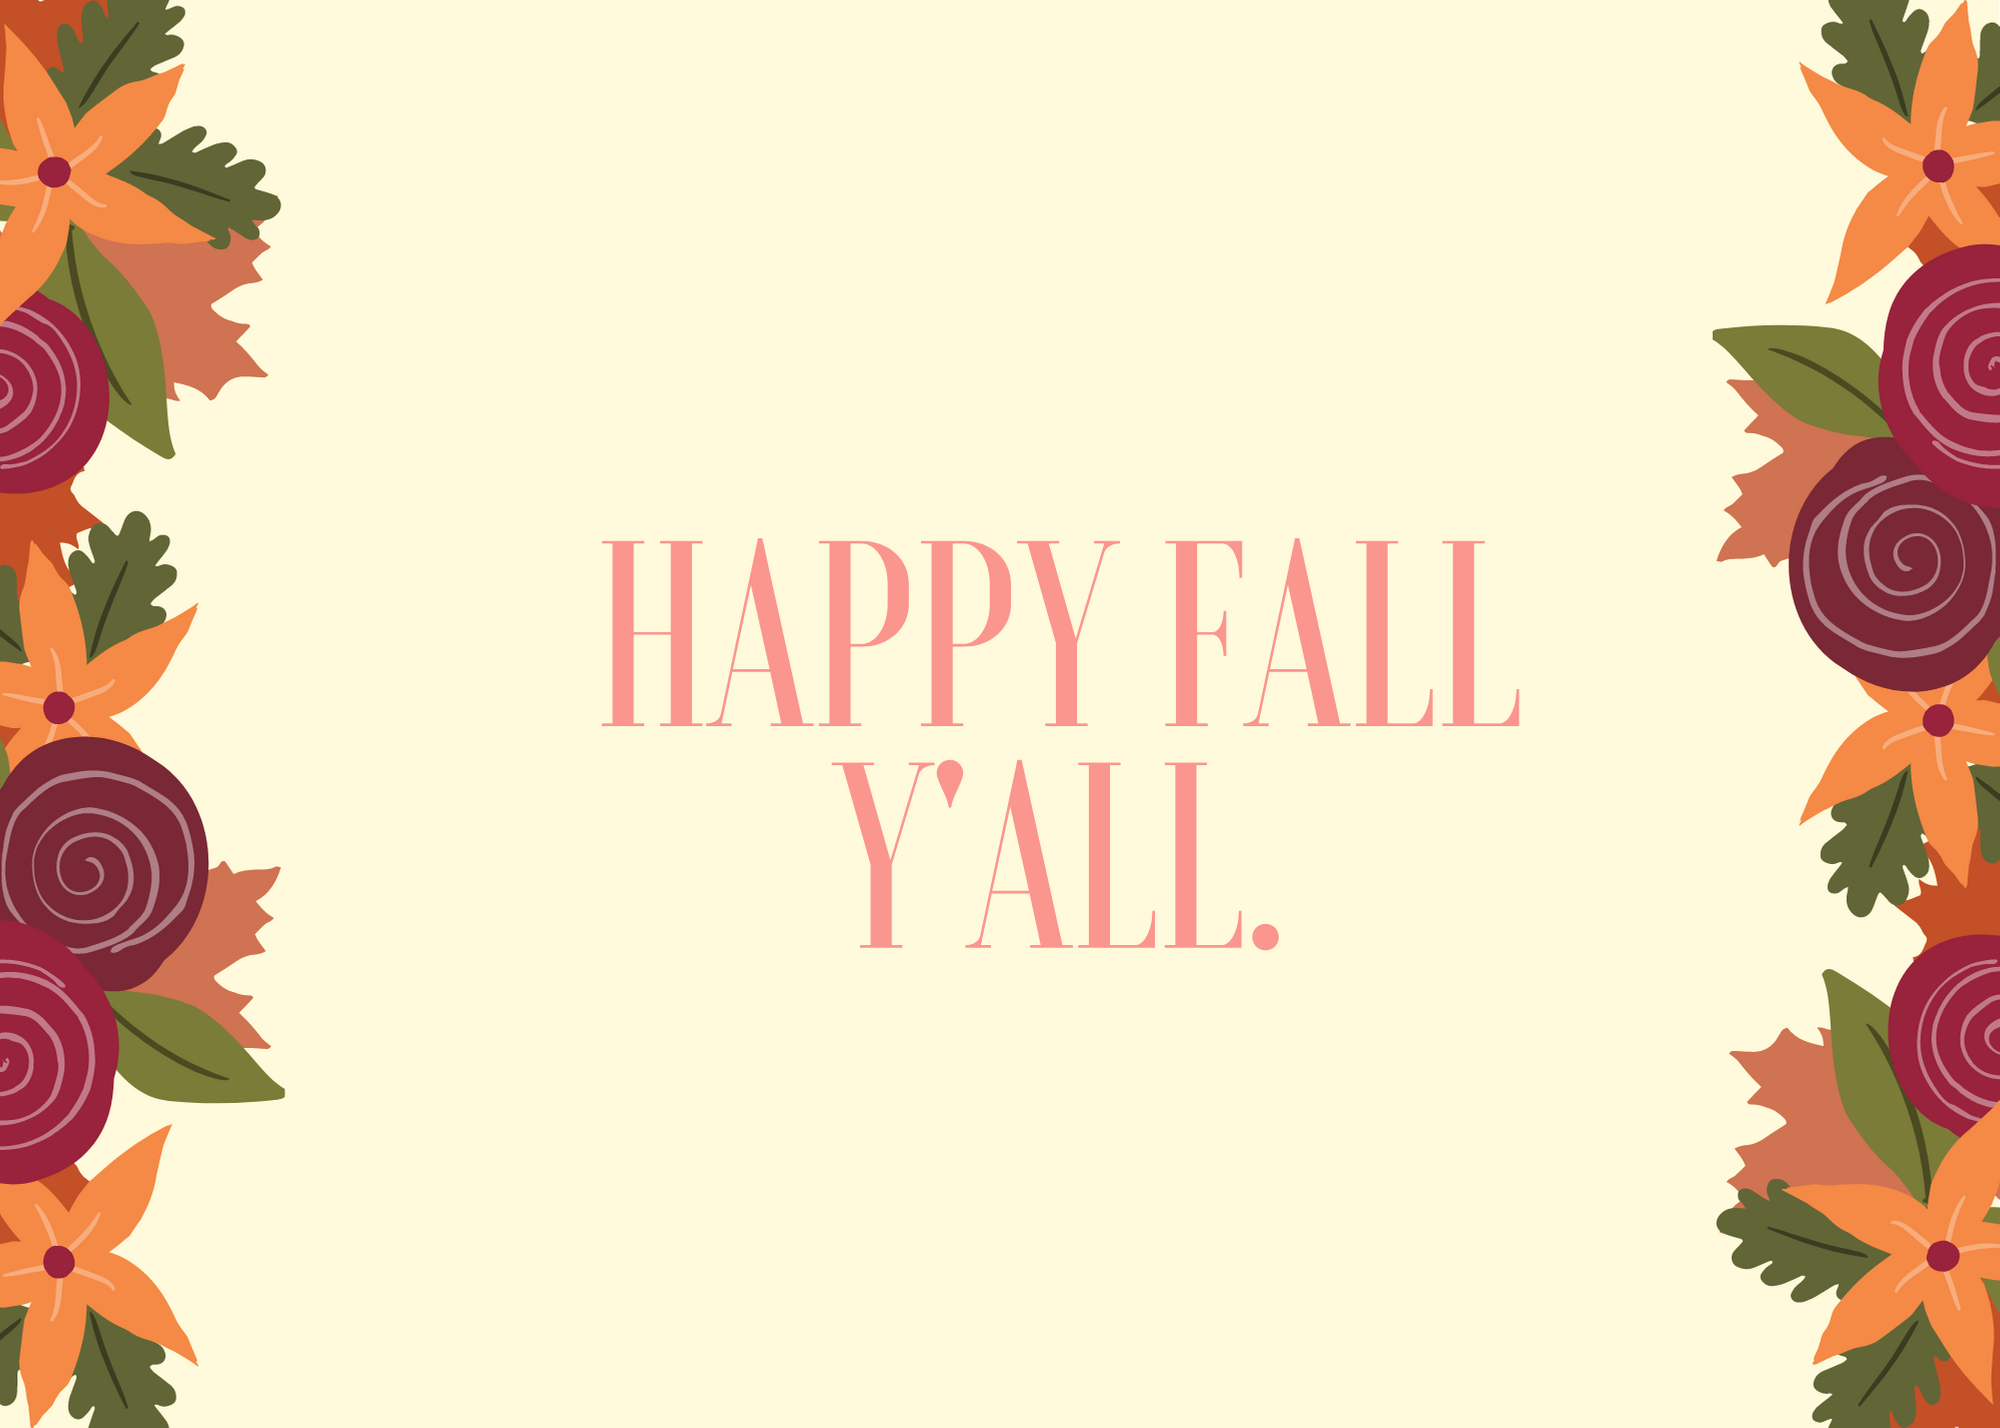 Funny Fall Instagram Caption About Happy Fall